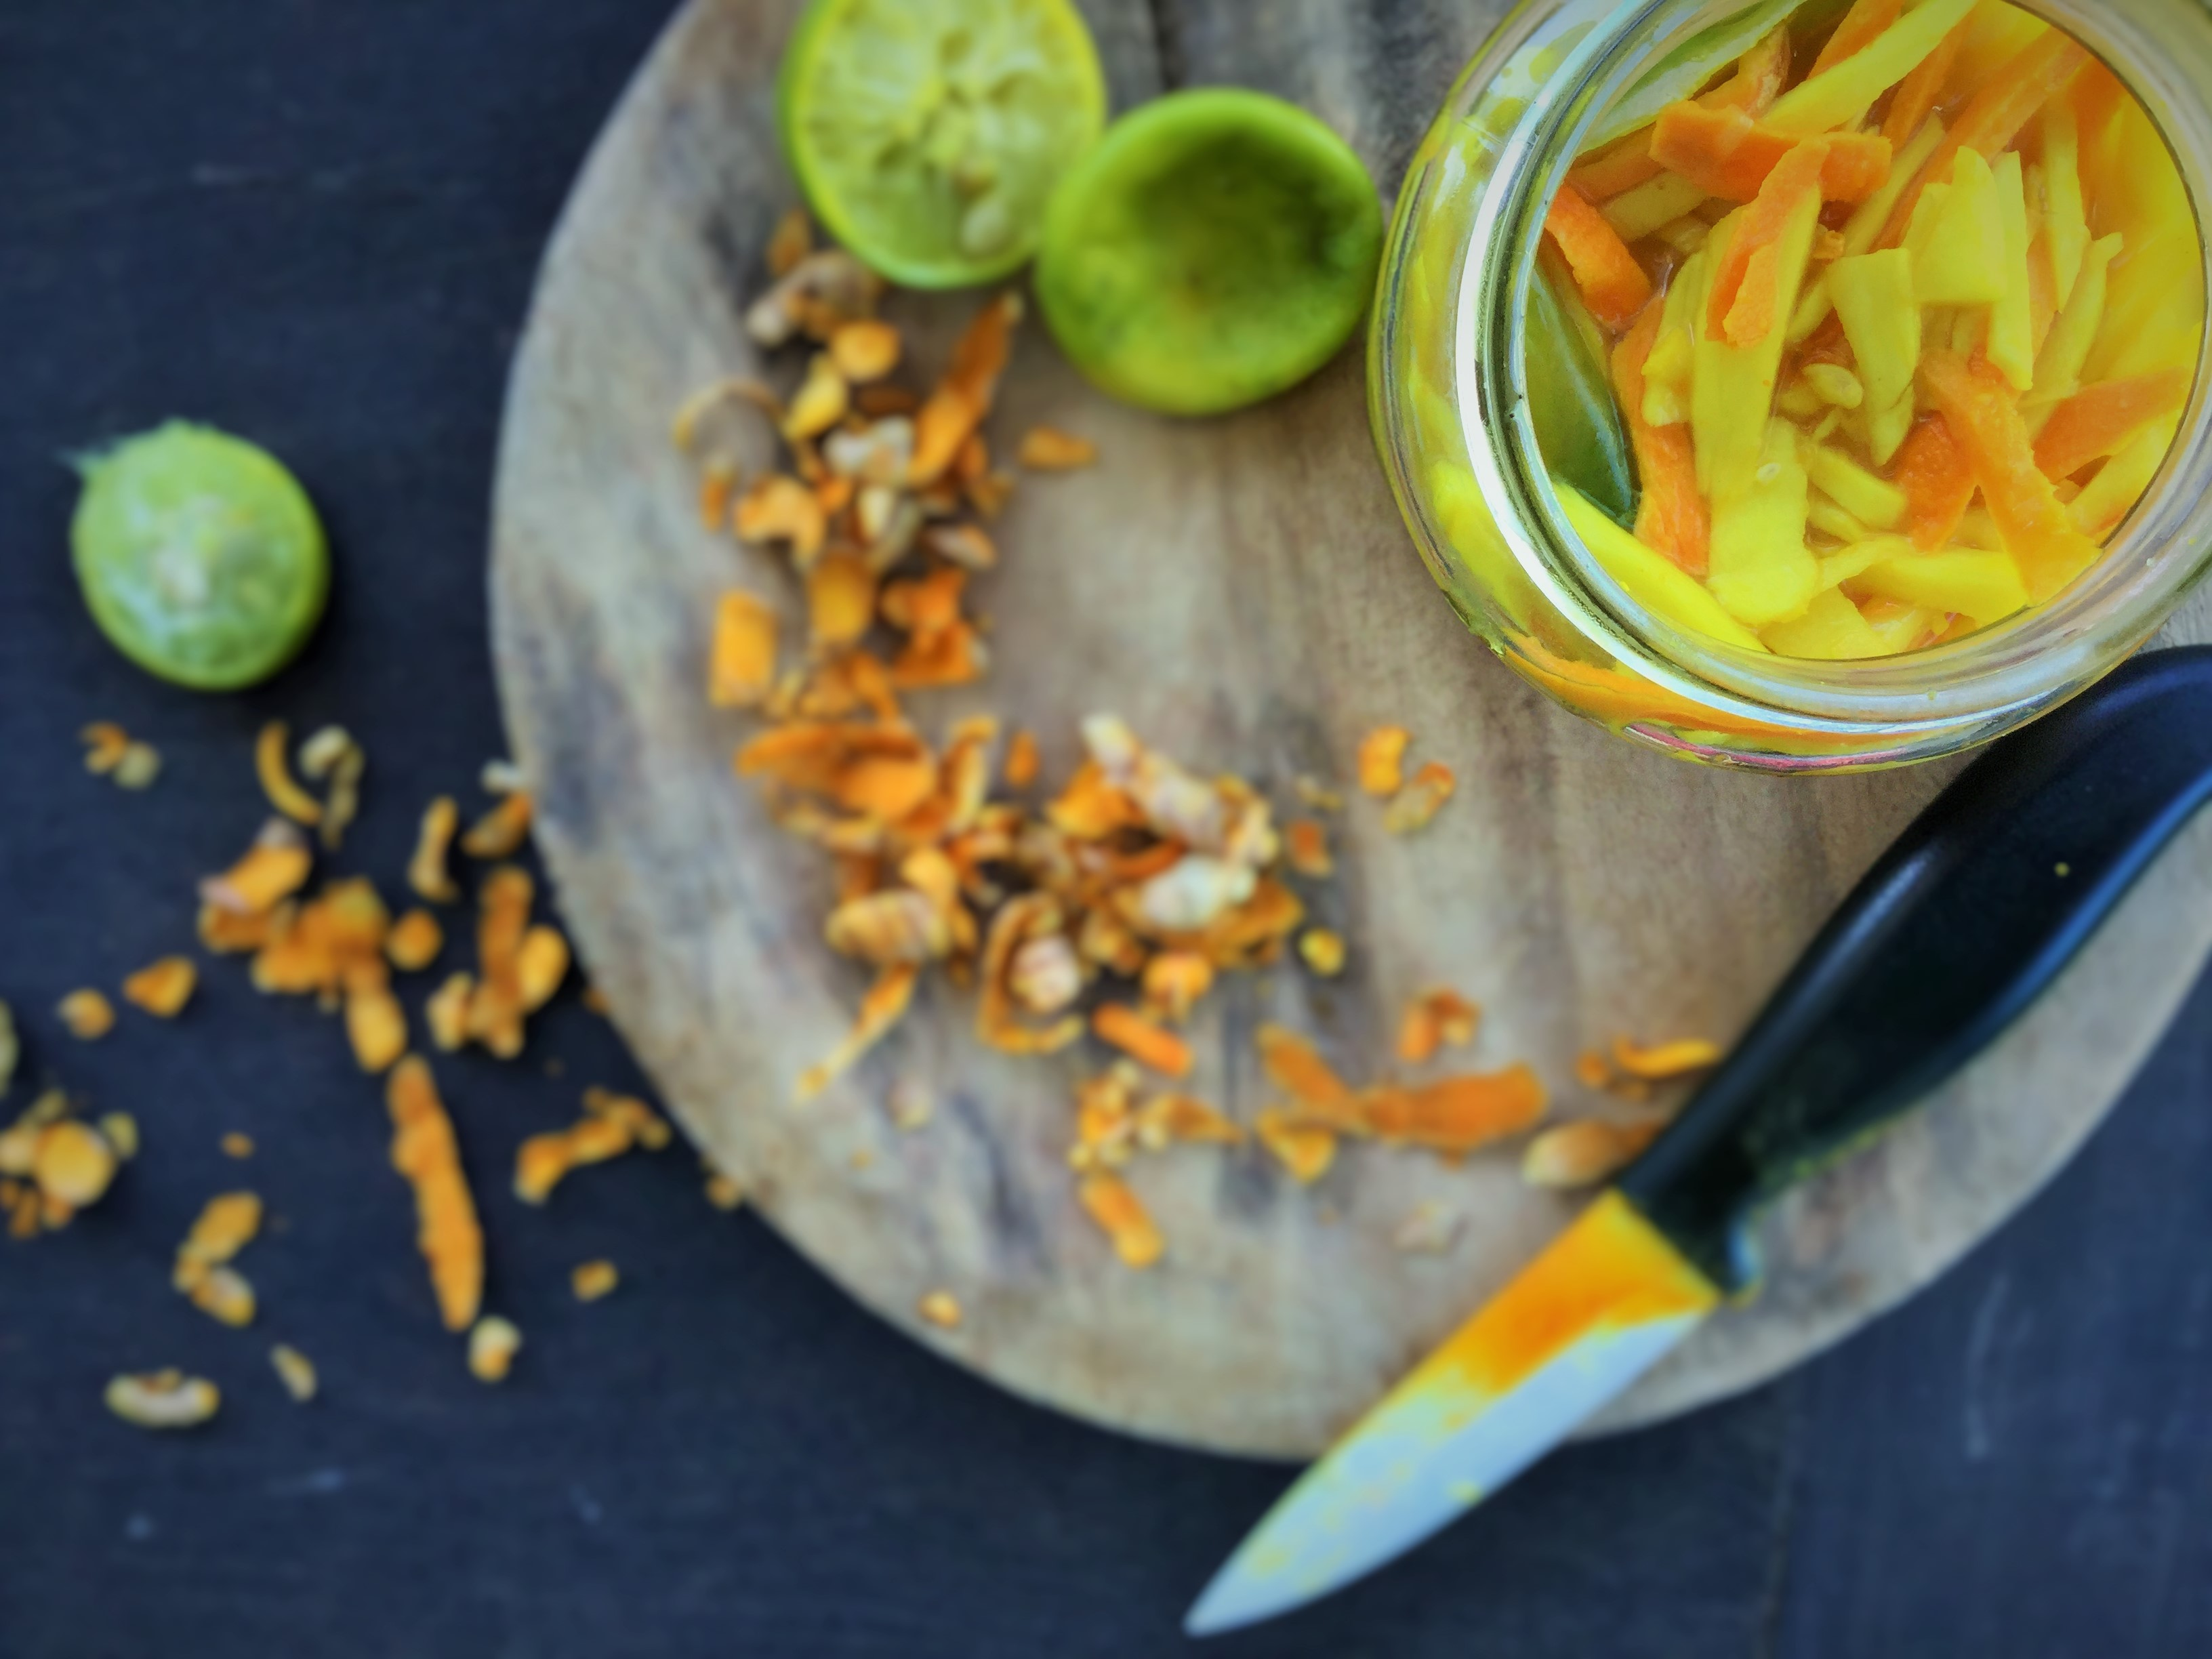 Pickled fresh turmeric with mango ginger (manjal and maa inji)